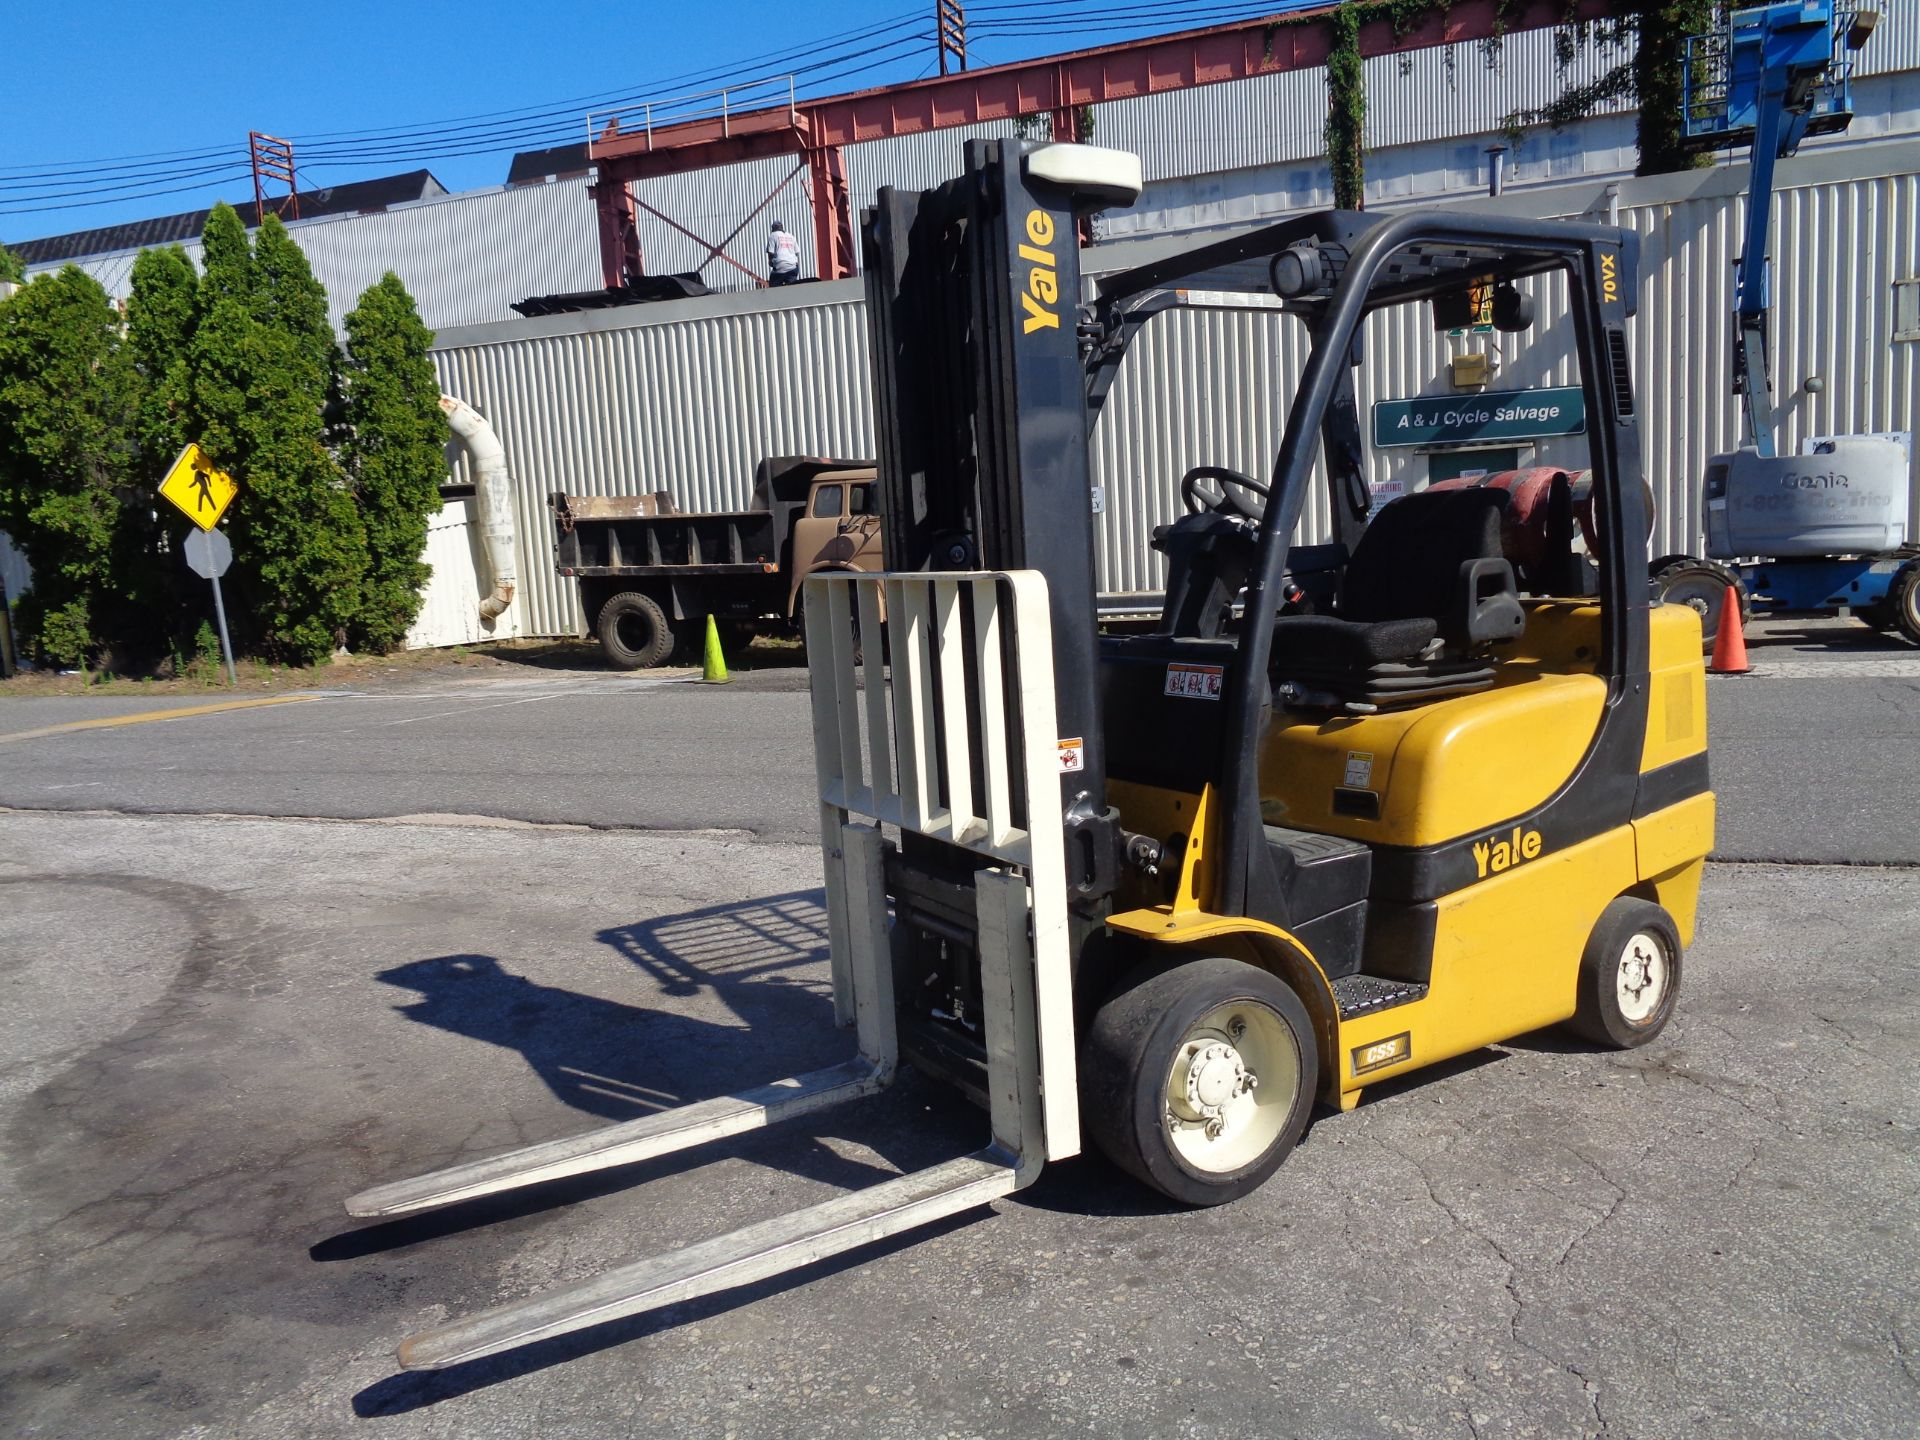 2014 Yale GLC070VXNGSE088 7,000 lbs Forklift - Image 12 of 12